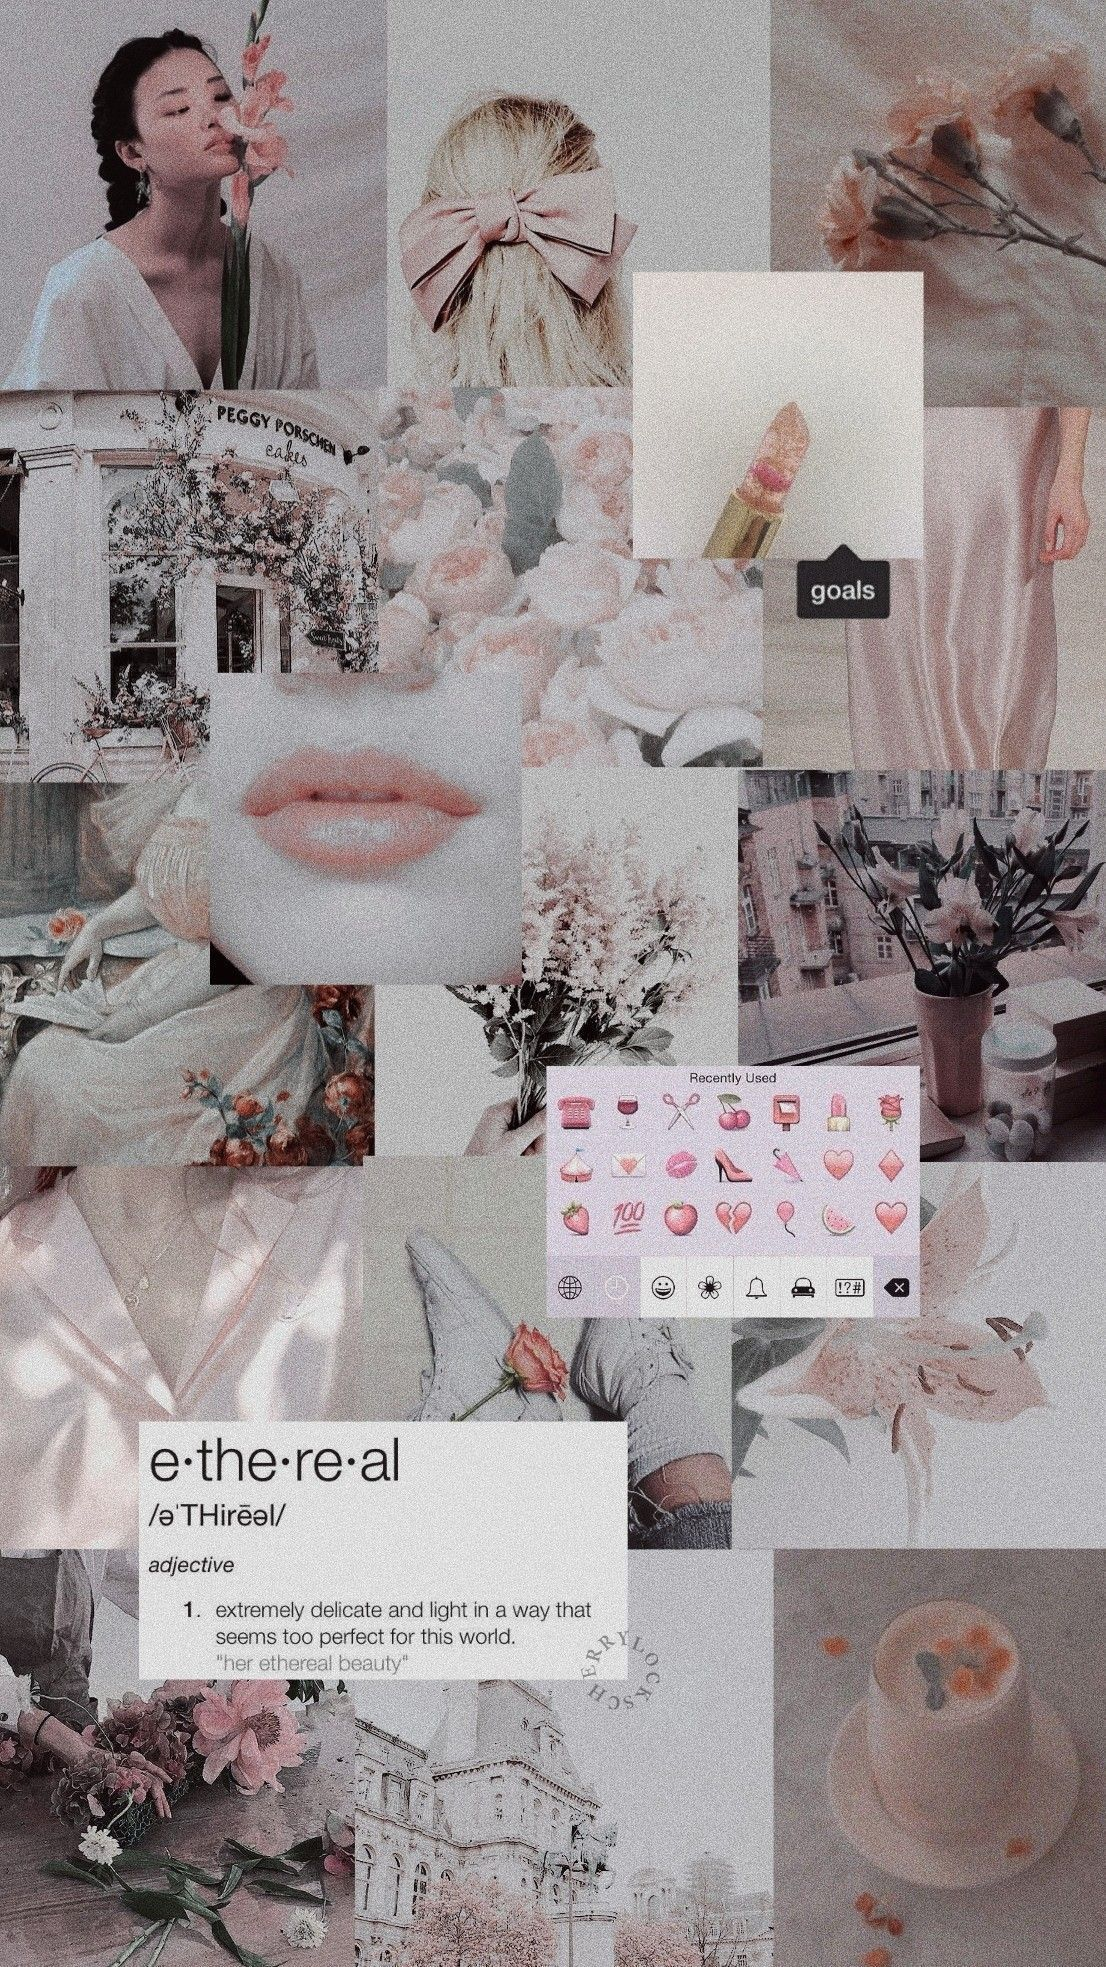 Aesthetic Wallpaper : Iphone White Aesthetic Lockscreen ~ HD Wallpaper - Art & Drawing Community : Explore & Discover the best and the most inspiring Art & Drawings ideas & trends from all around the world